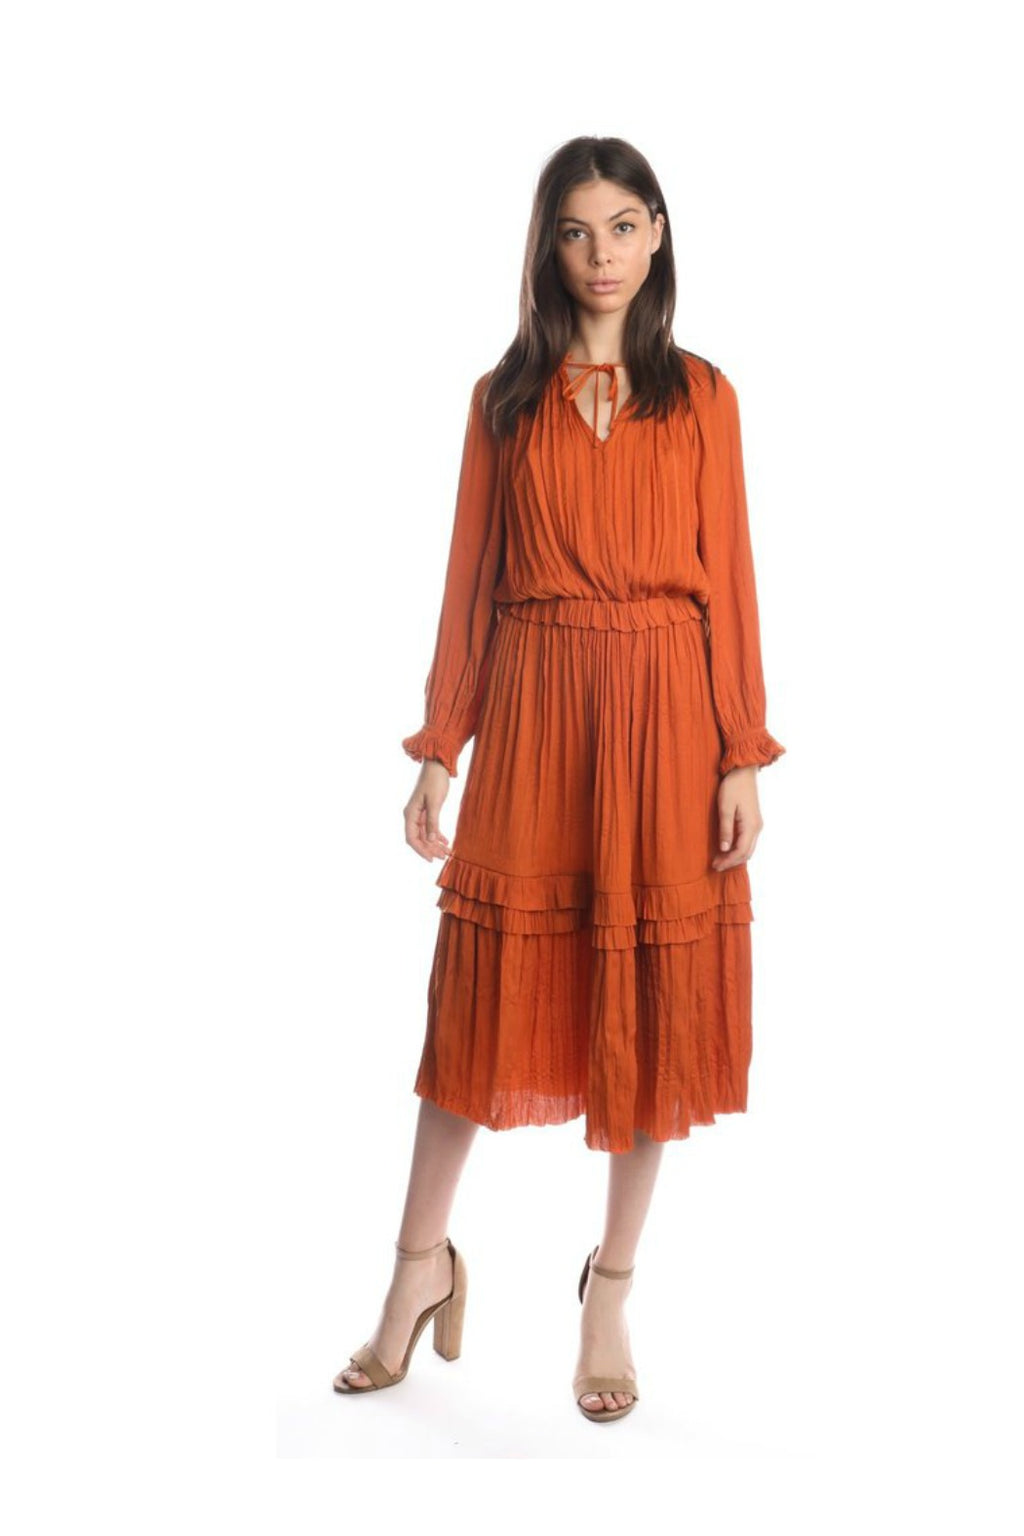 Current Air Out of Limits Dress in Burnt Orange